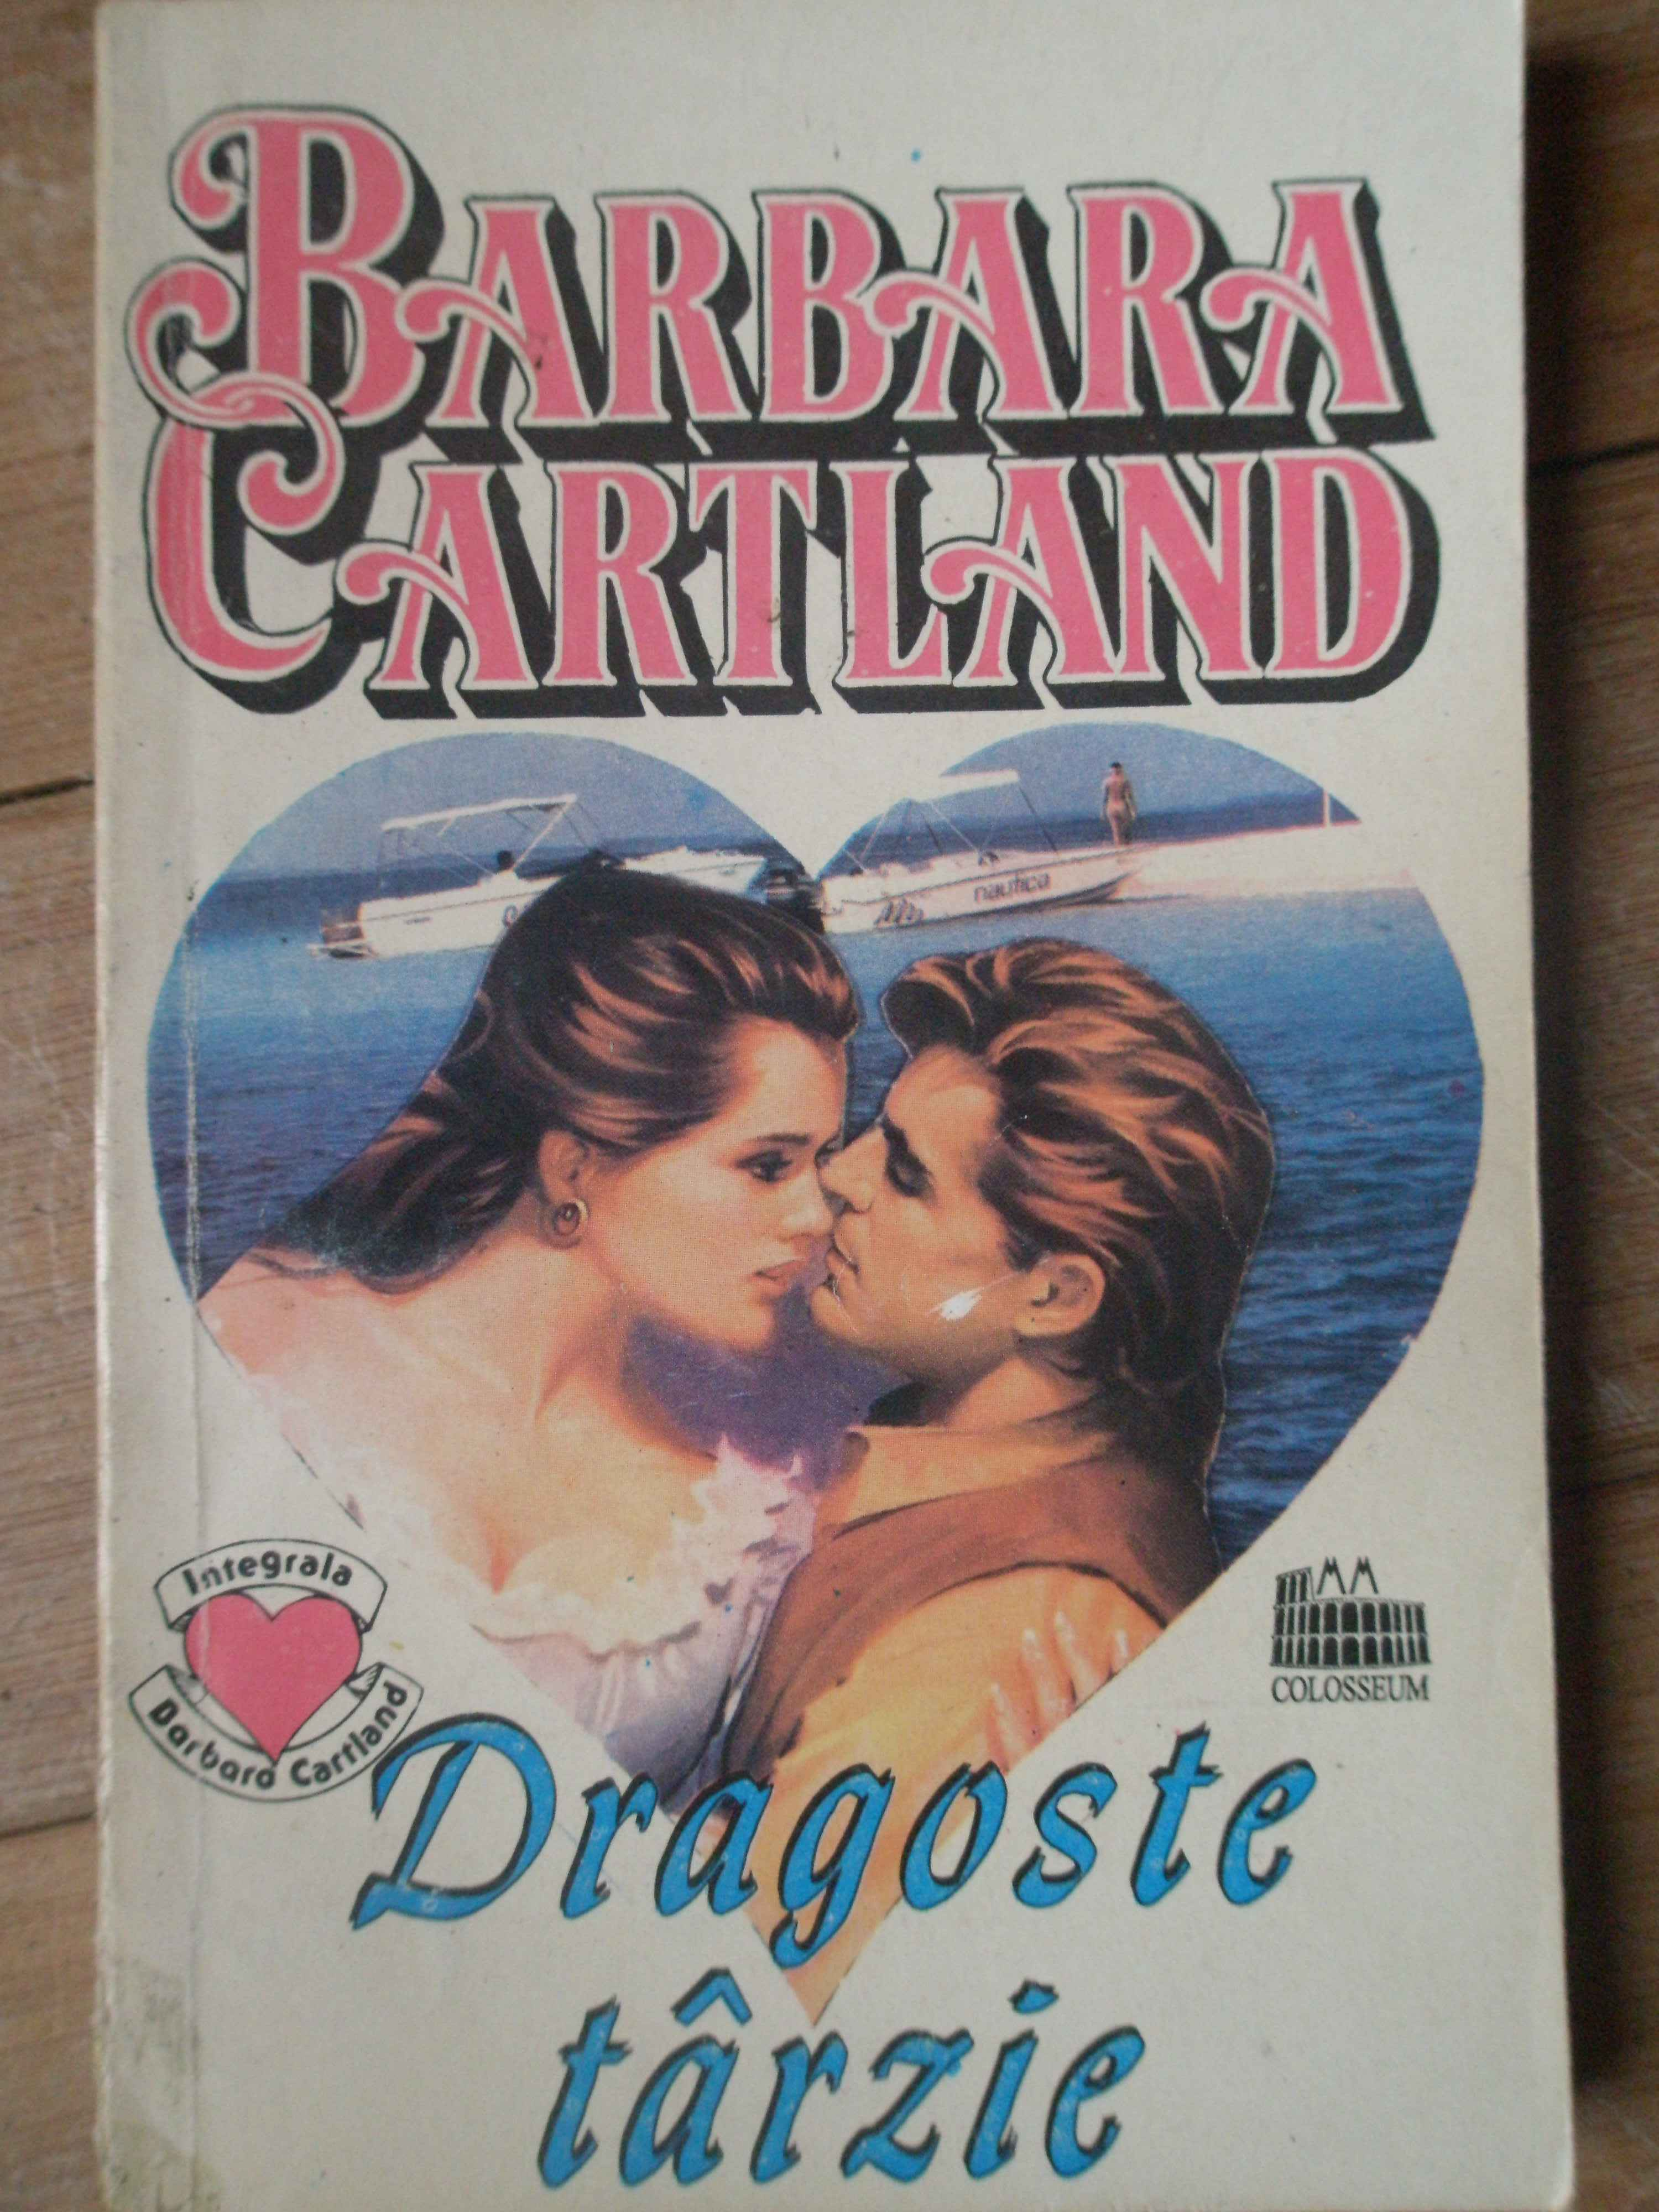 dragoste tarzie                                                                                      barbara cartland